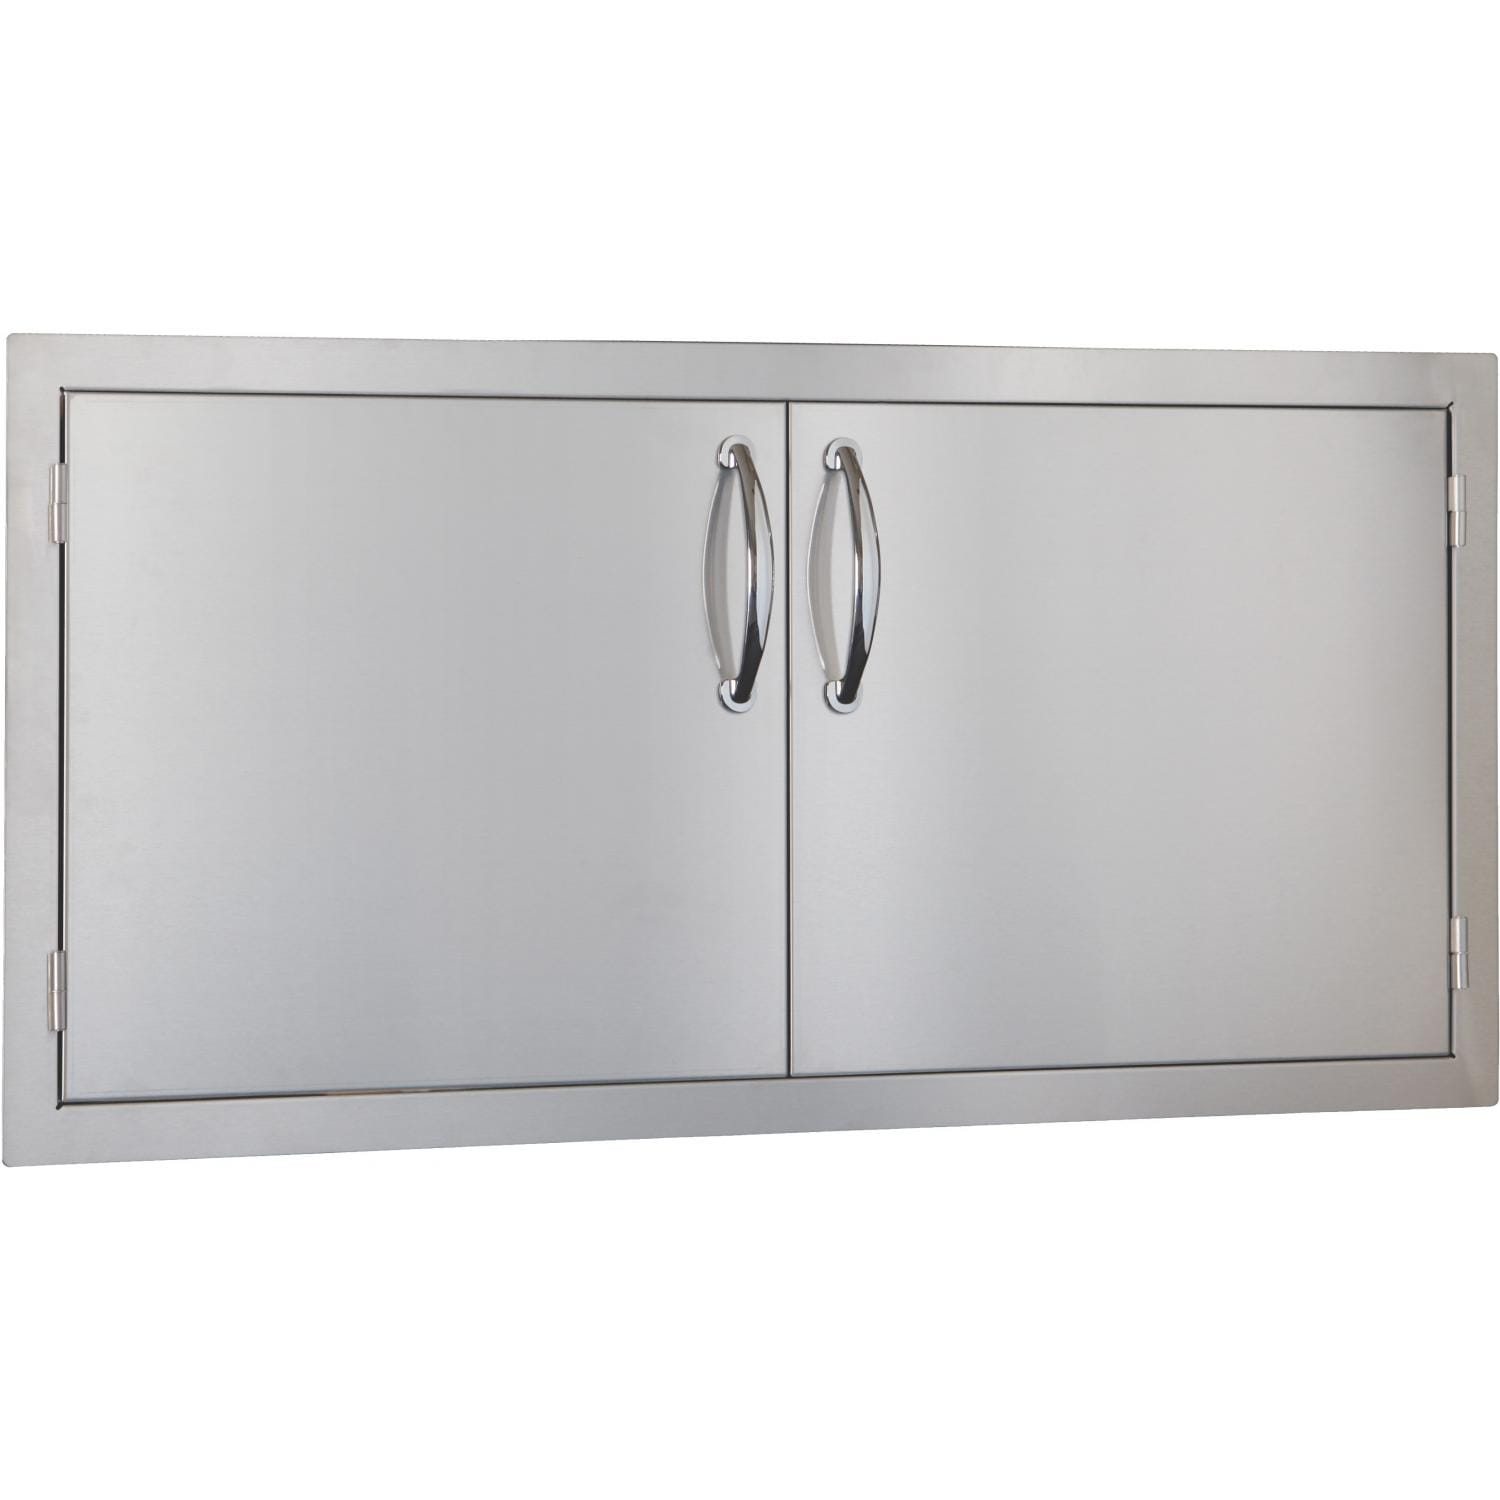 Summerset 42-Inch Stainless Steel Flush Mount Double Access Door - SSDD-42